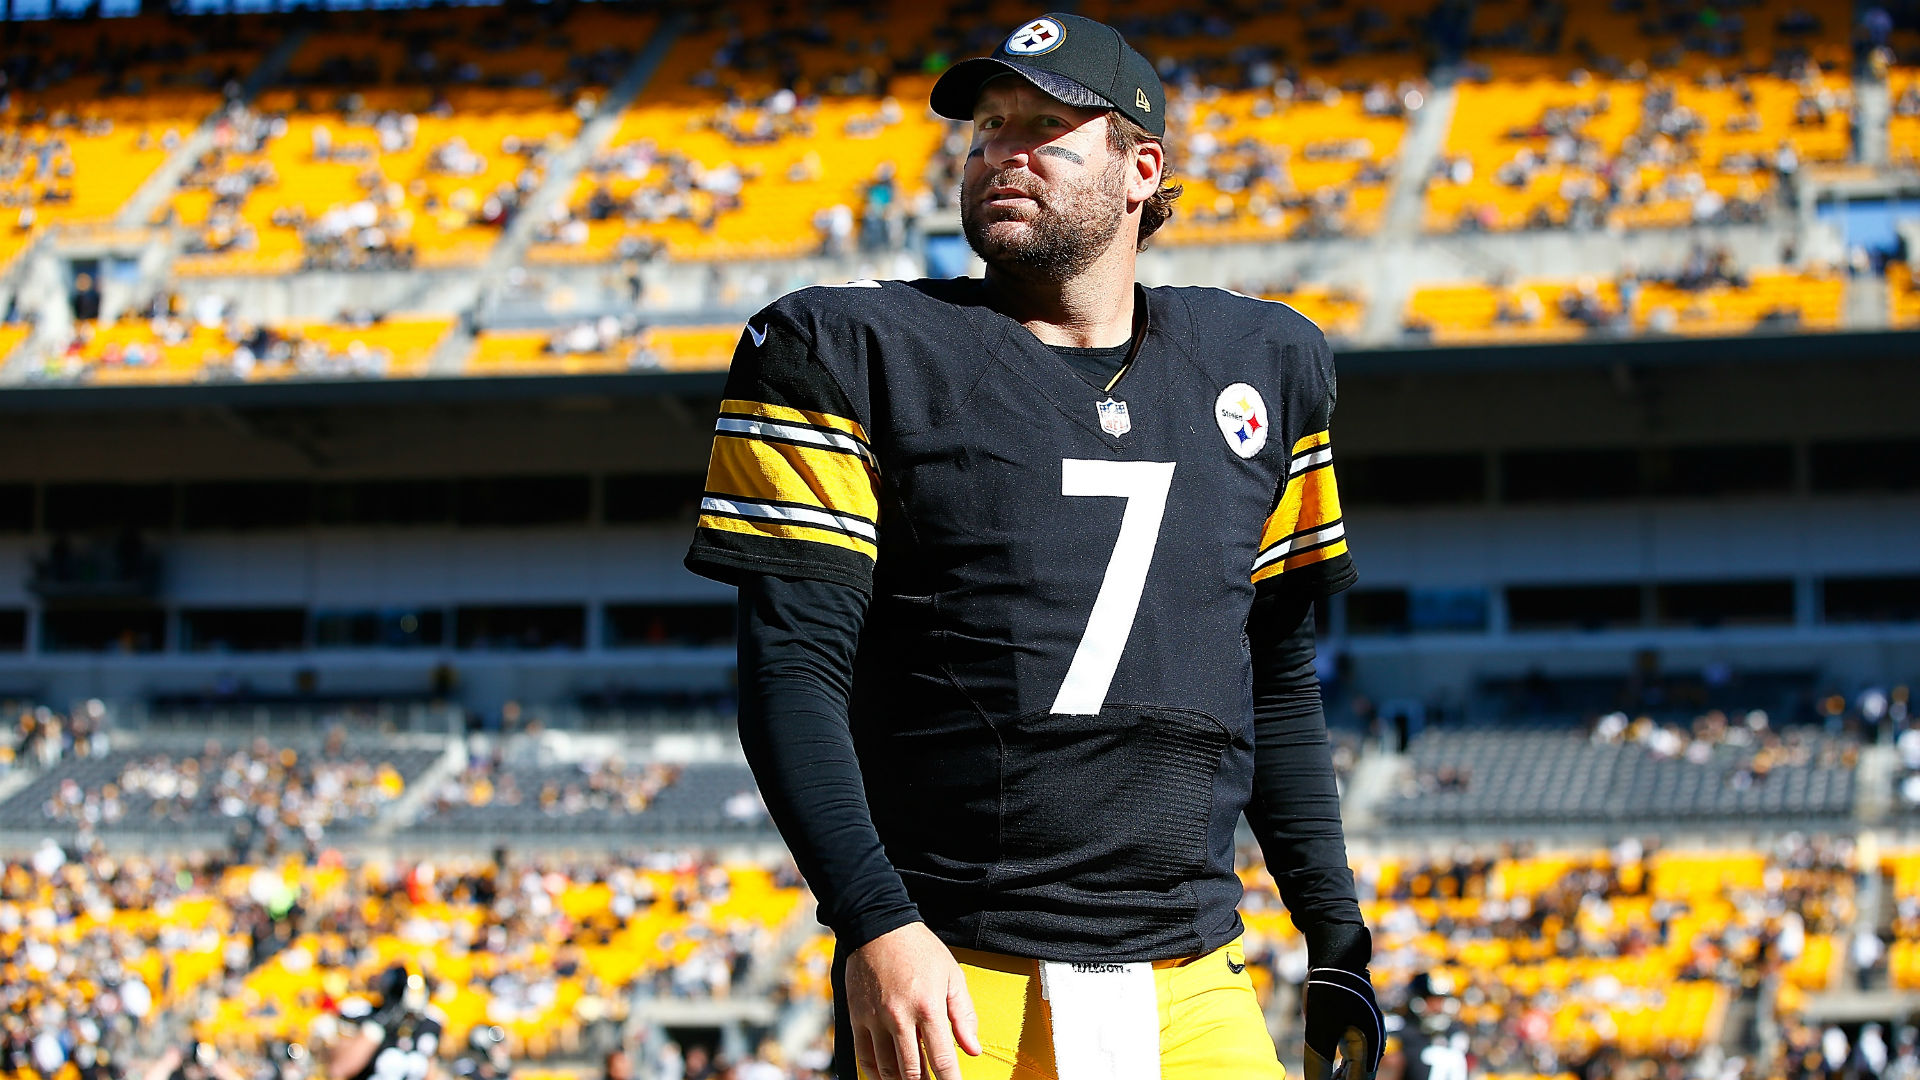 ben-roethlisberger-111615-usnews-getty-ftr